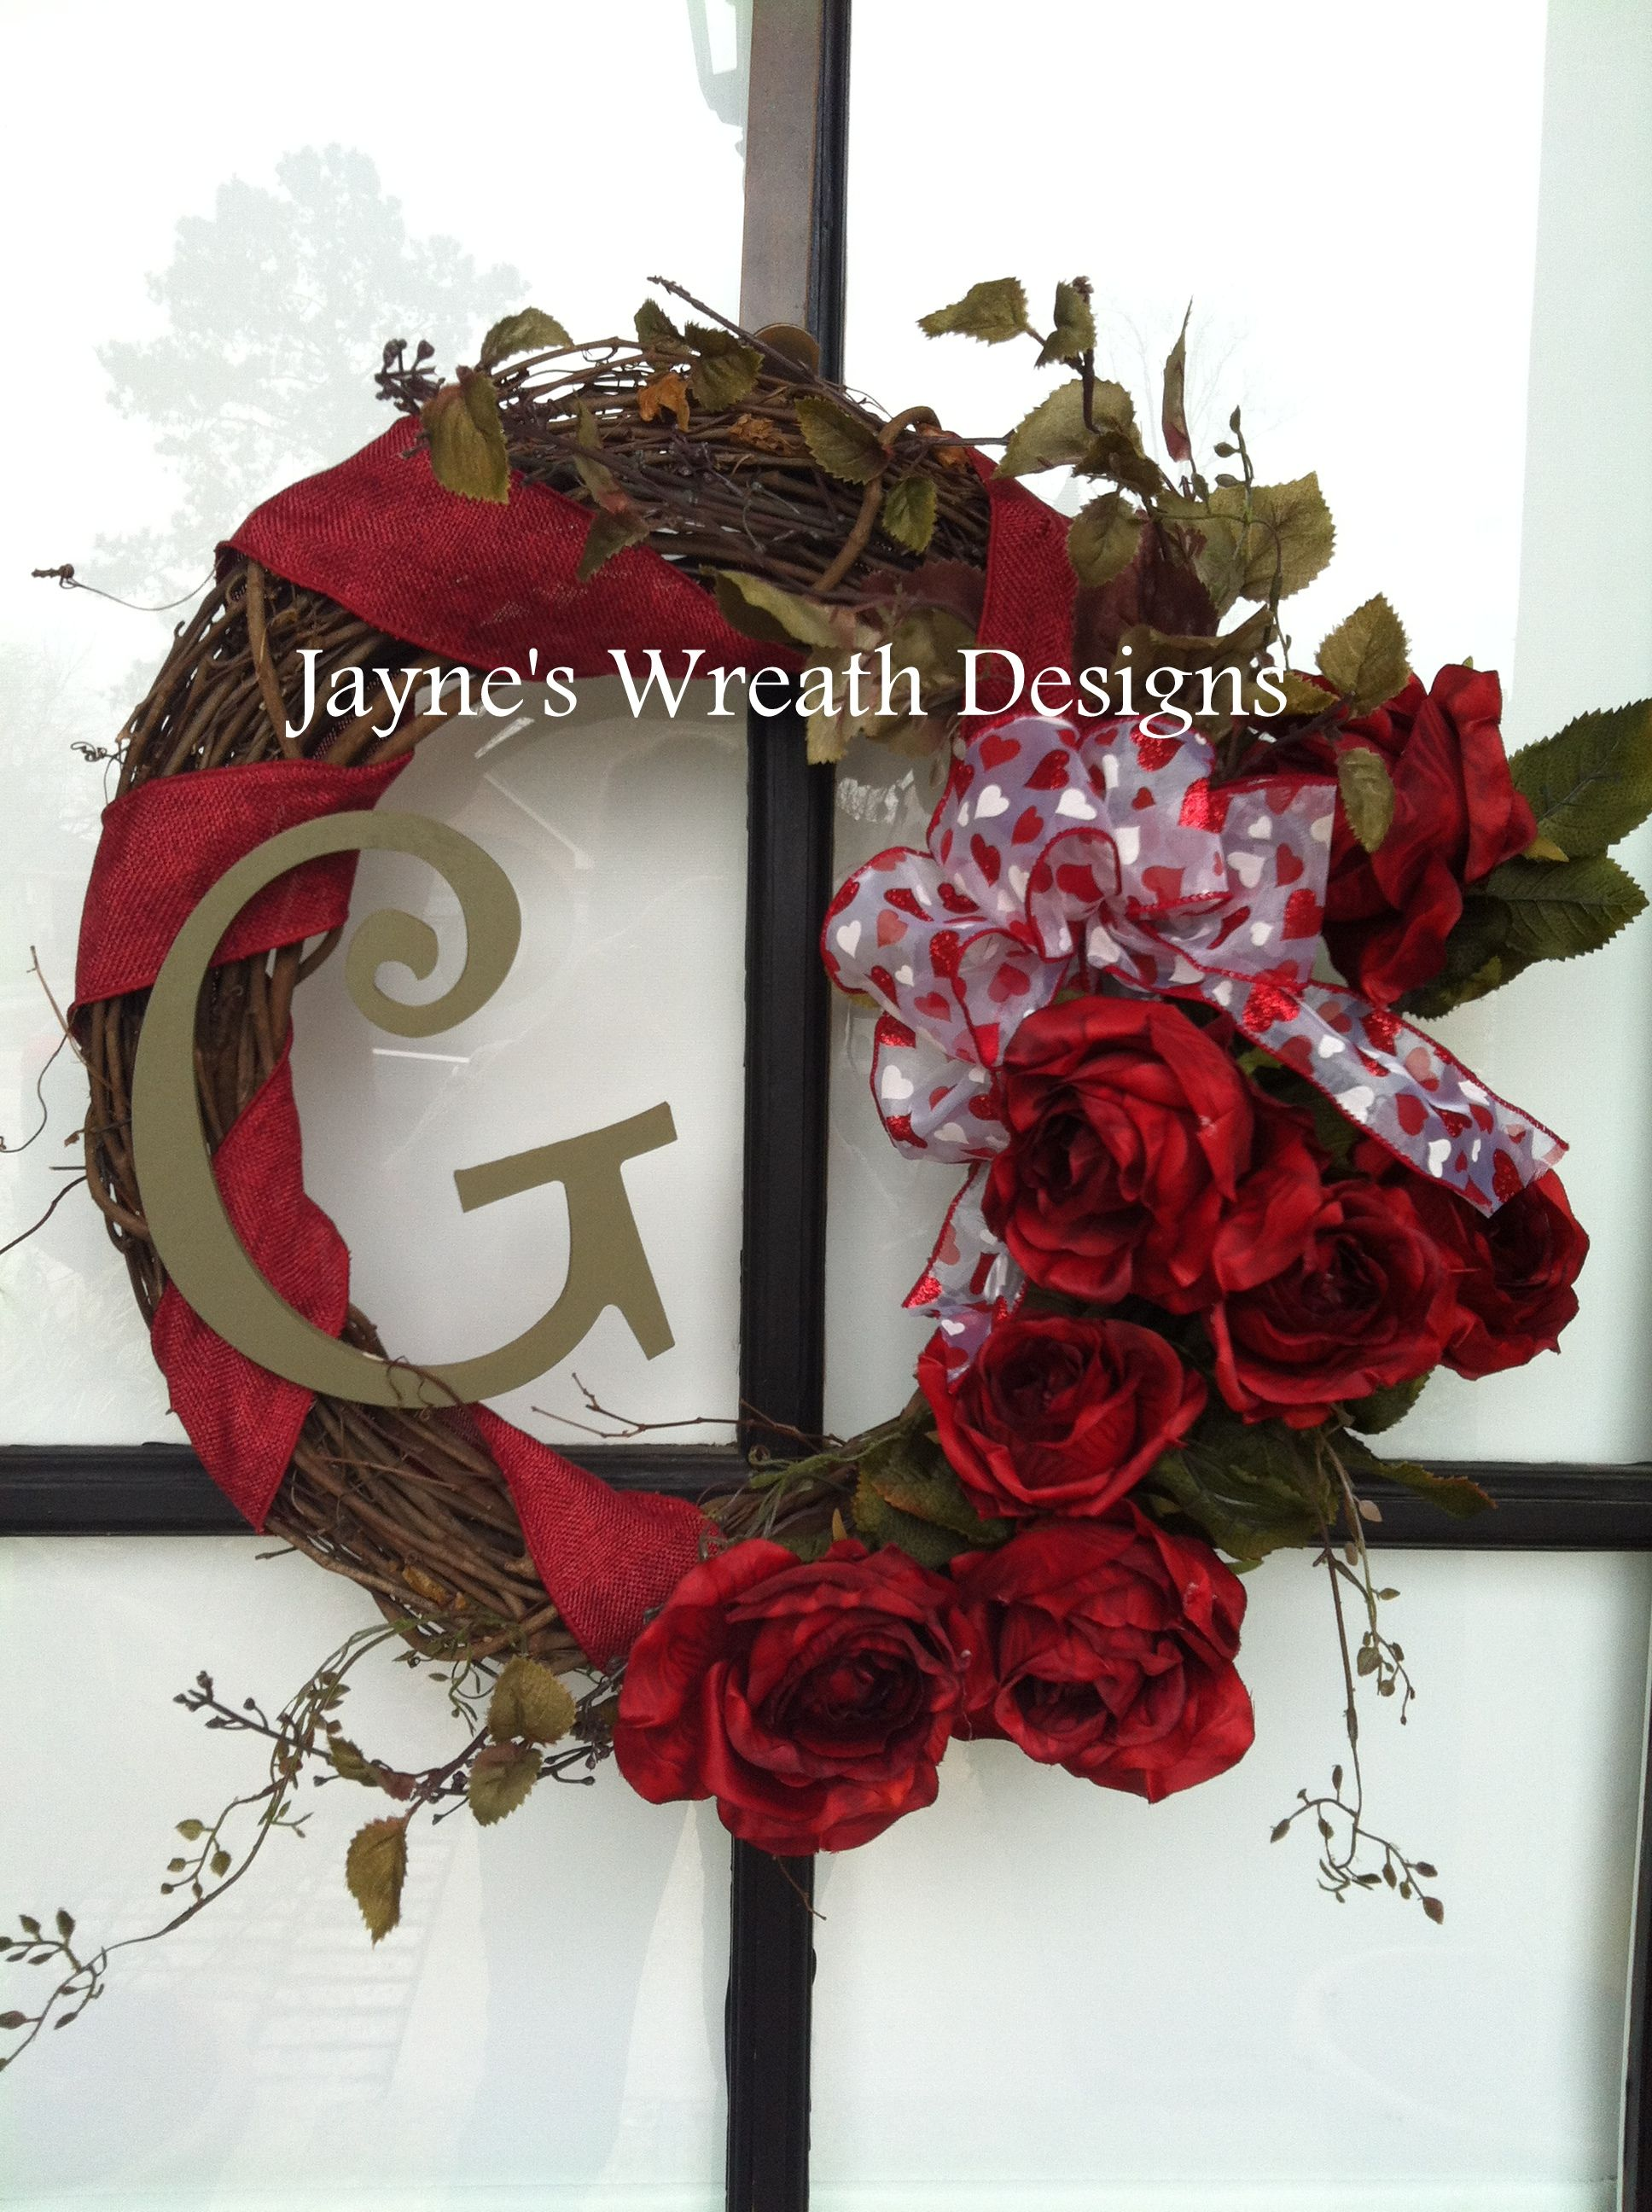 Valentine Grapevine Wreaths With Initial Roses Hearts Bow Valentine Decorations Valentine Wreath Wreaths